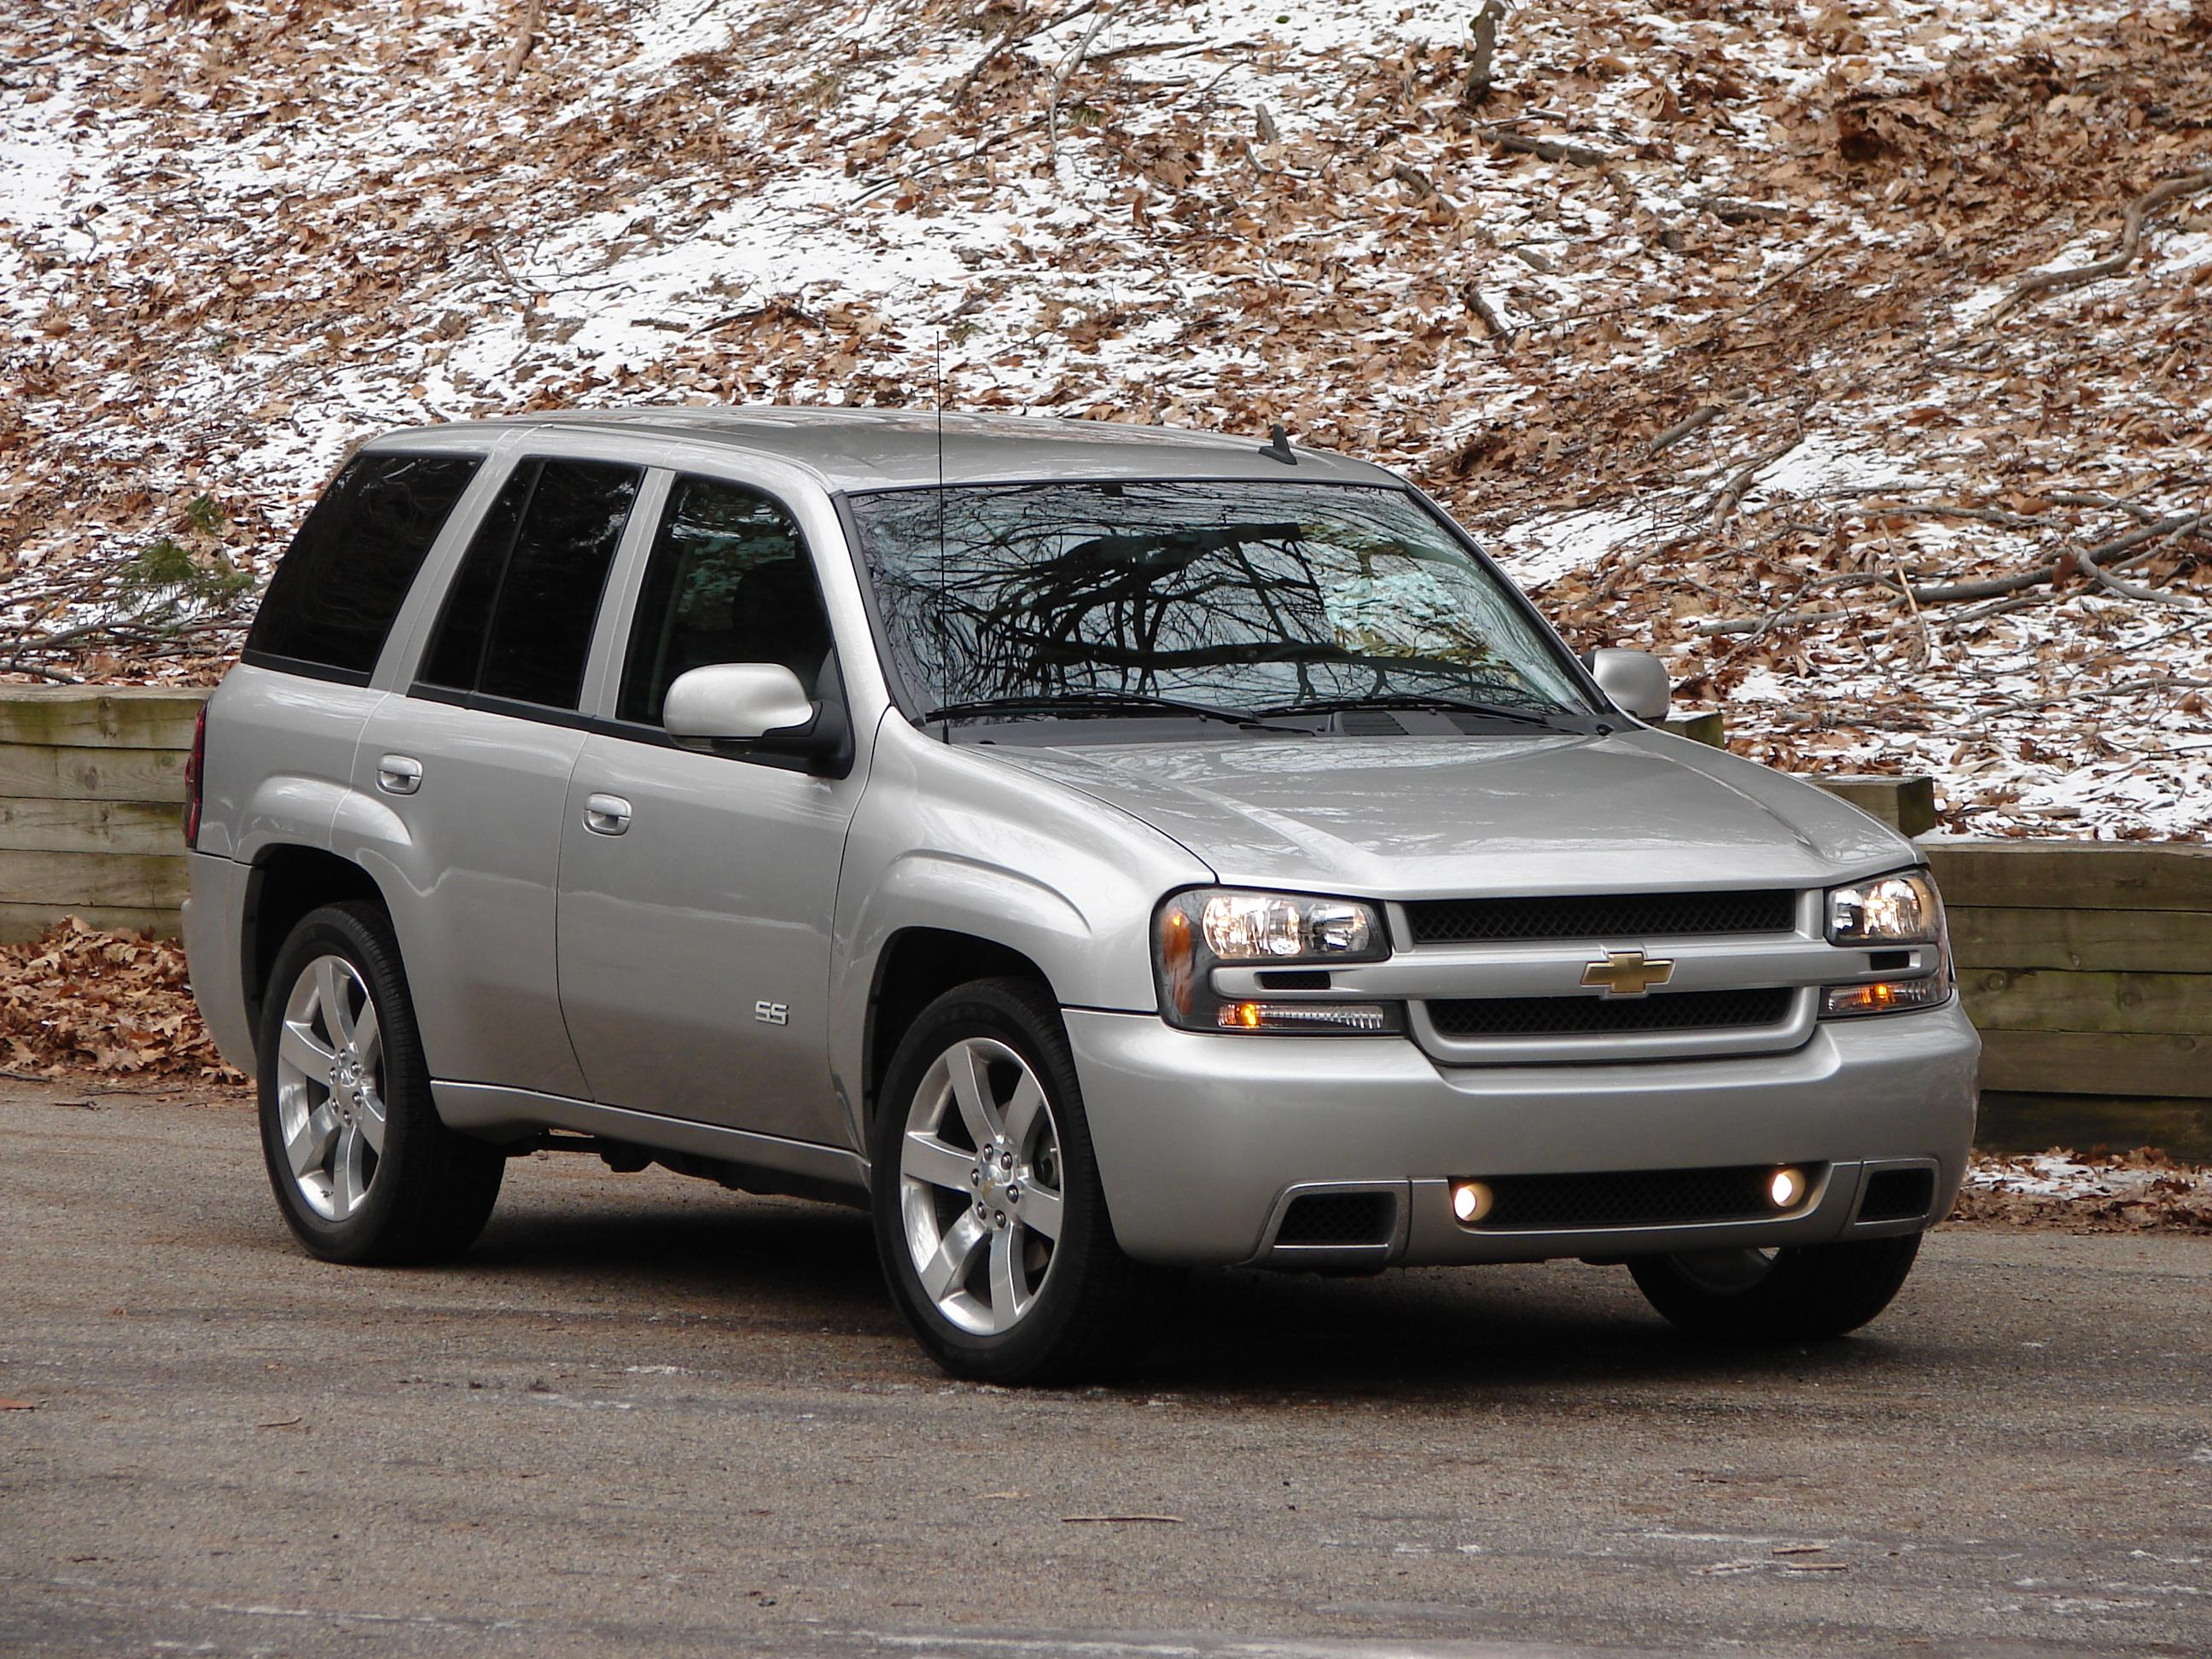 2009 Chevrolet Trailblazer #13